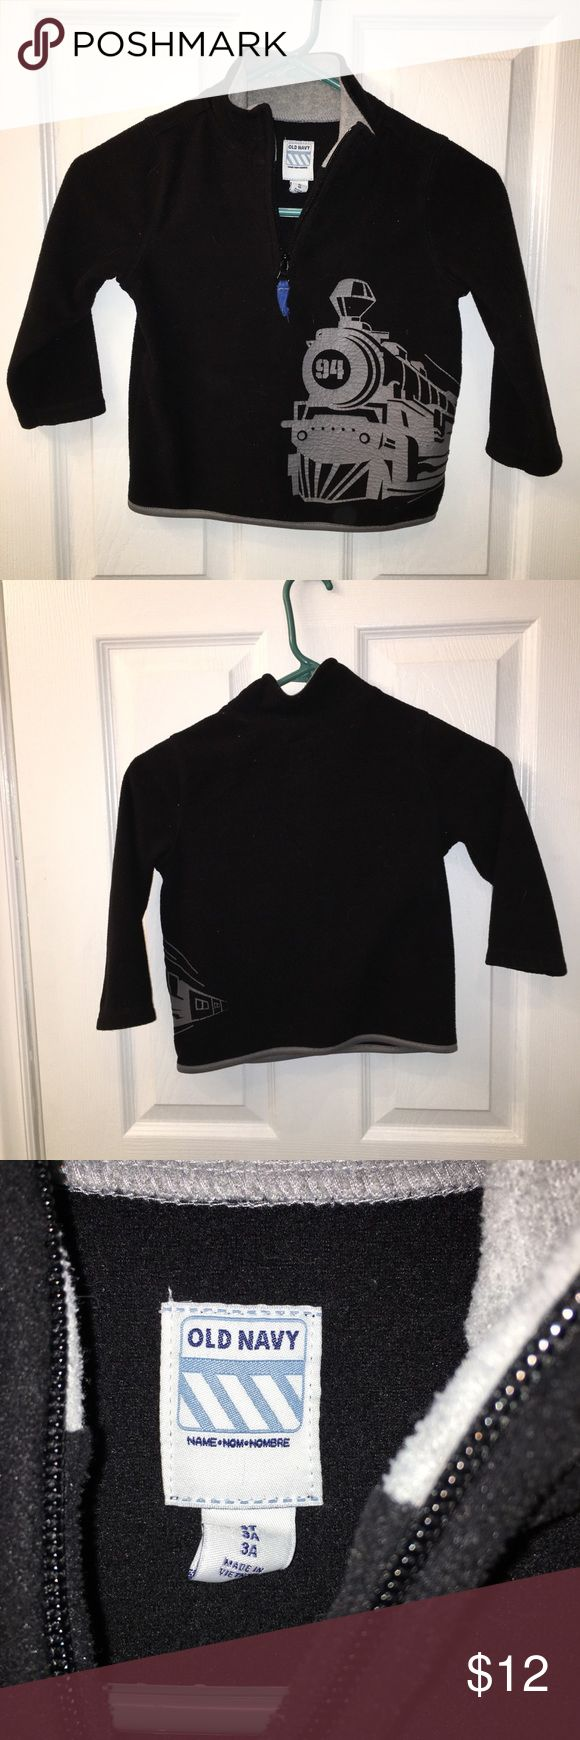 Fleece Pullover Black Old Navy Fleece pullover with steam train design, perfect for train lovers!! Old Navy Jackets & Coats